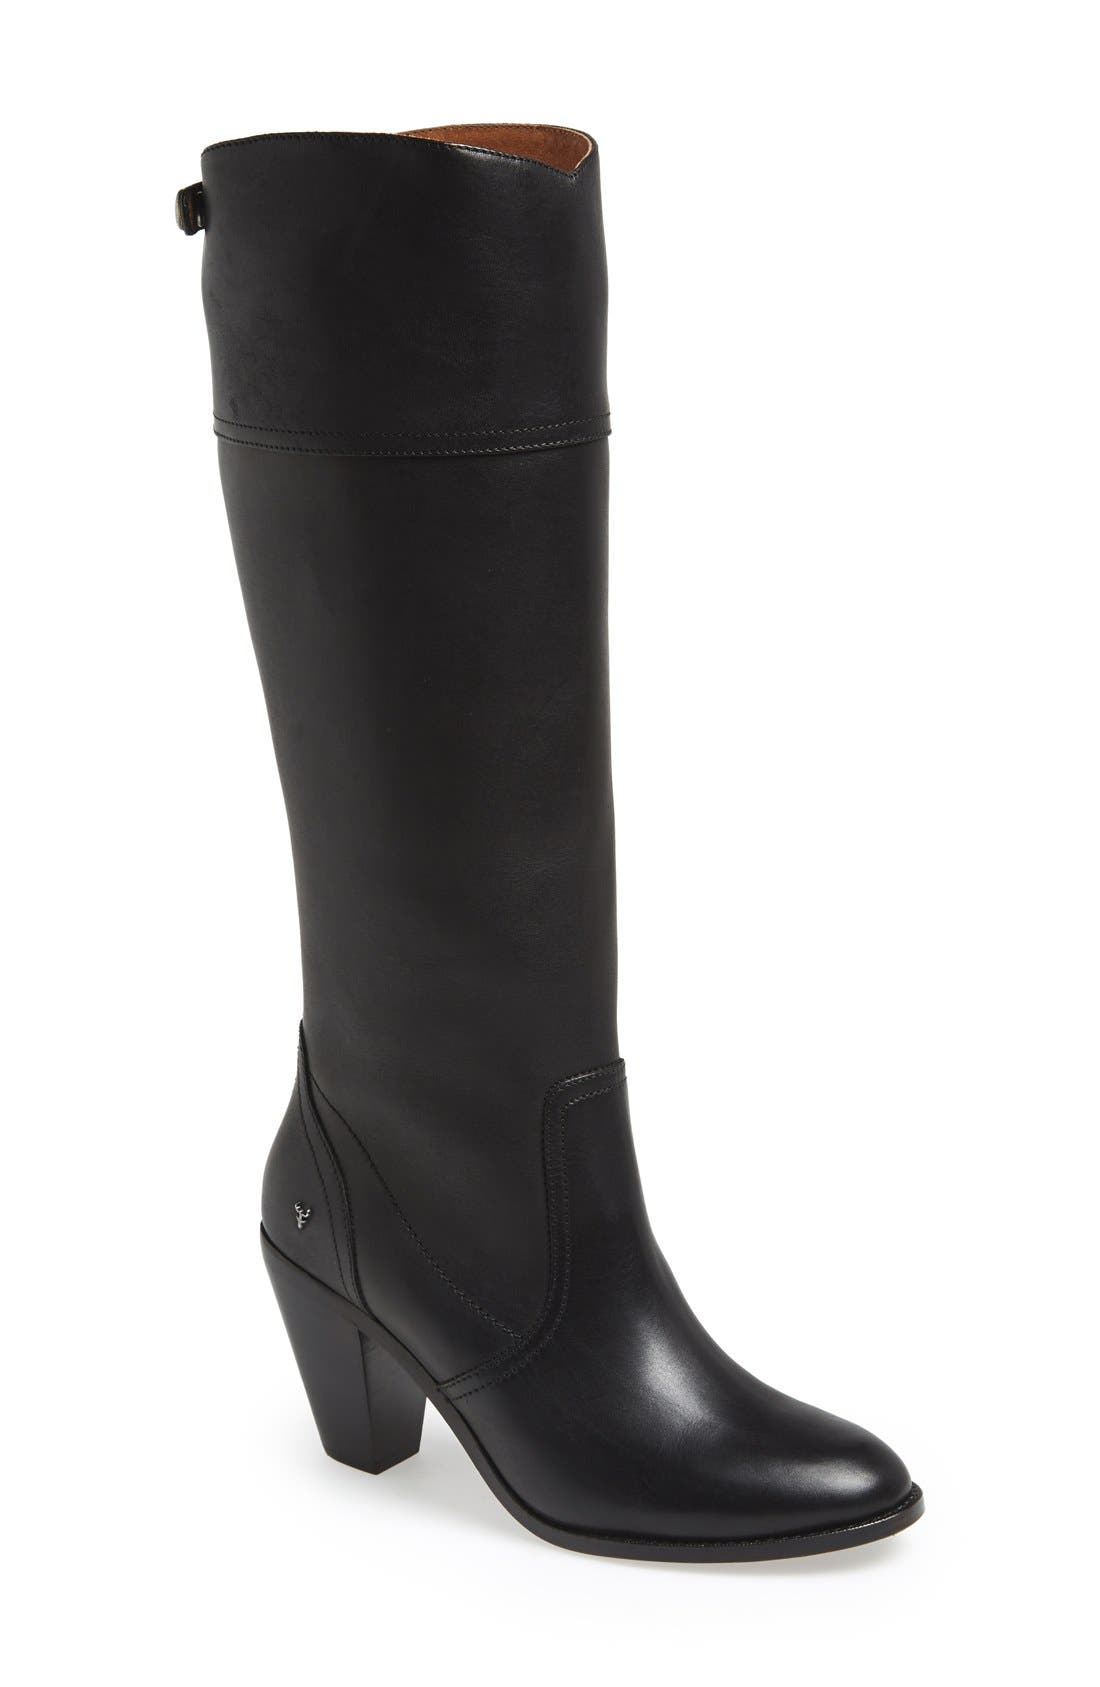 Alternate Image 1 Selected - Trask 'Abbey' Tall Boot (Women)